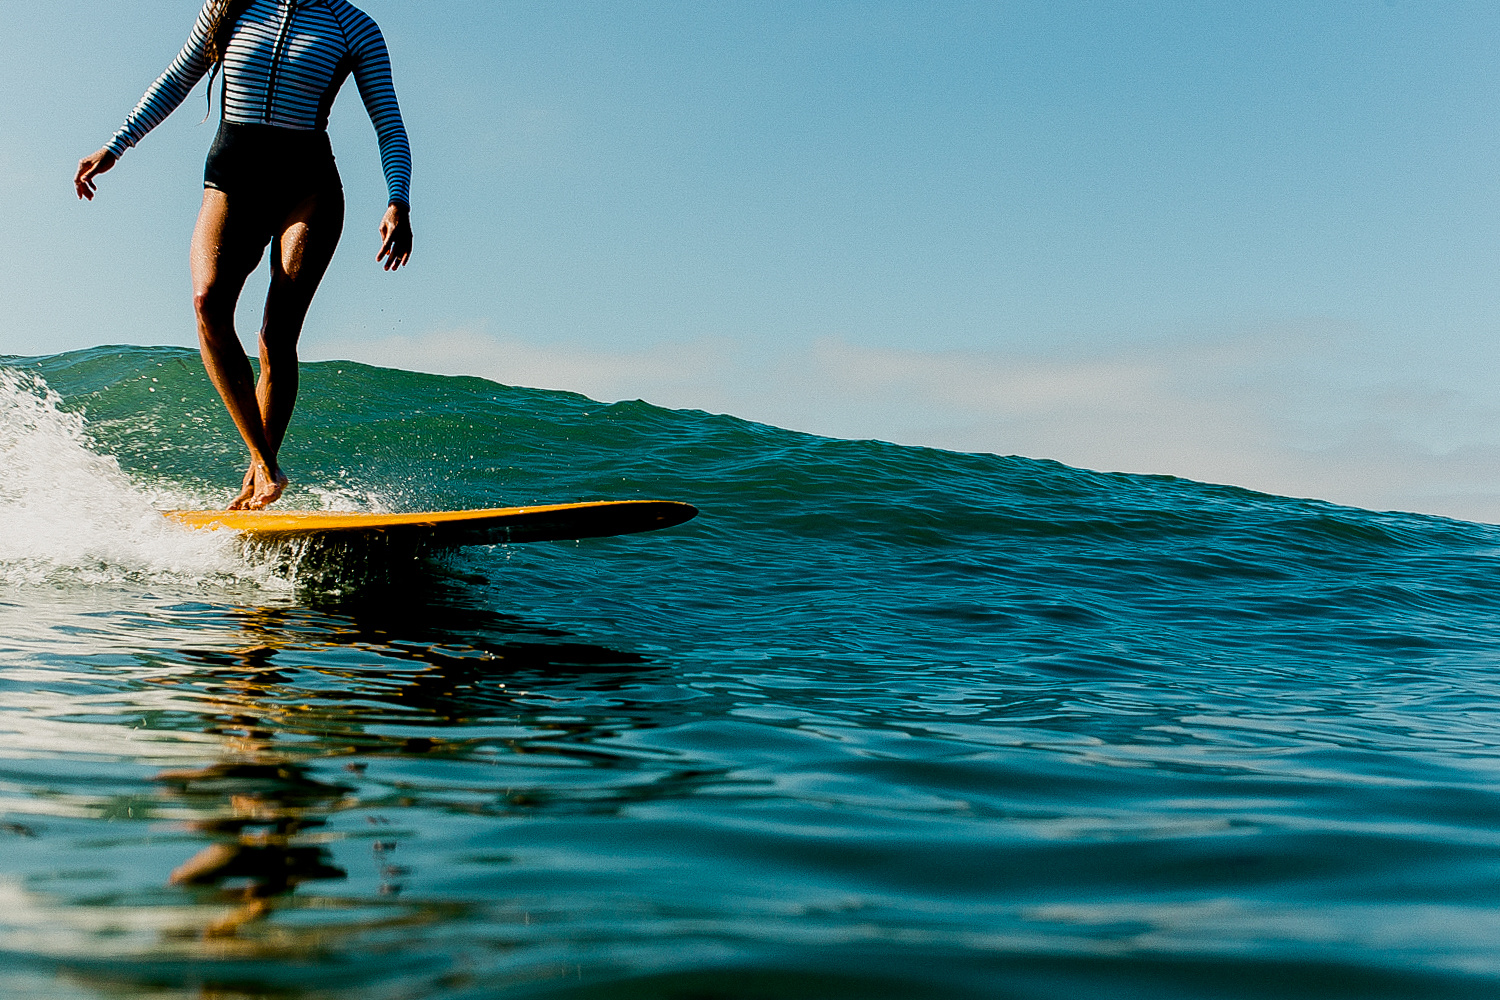 76323ee4046f Six Tips to Improve Your Surf Photography | Fstoppers